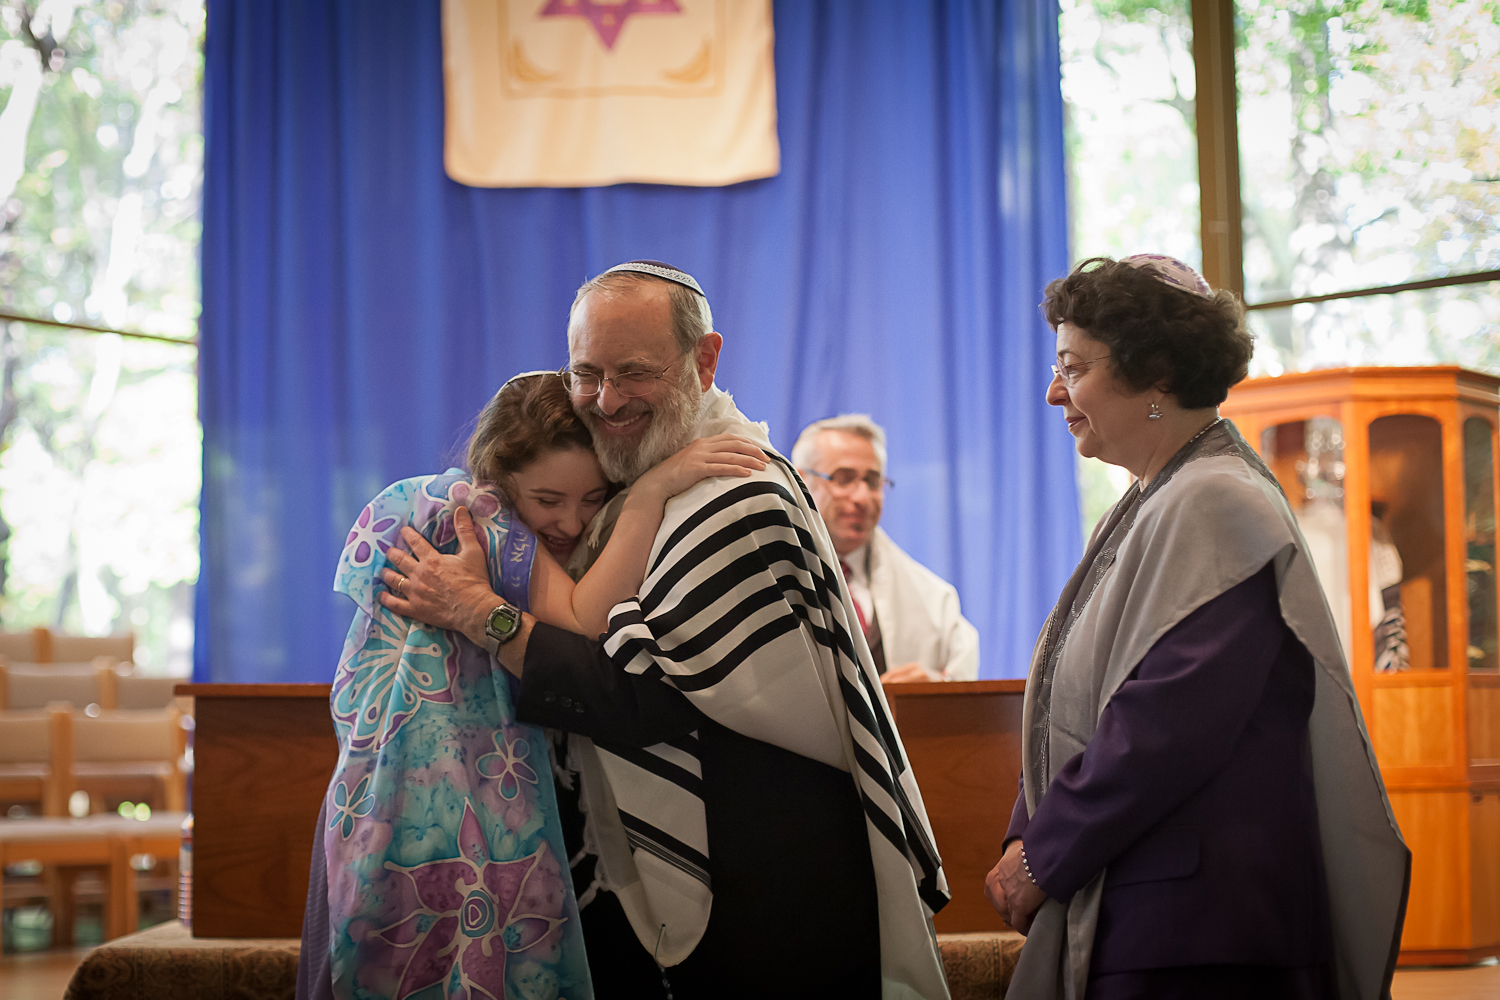 Hug at Bat Mitzvah